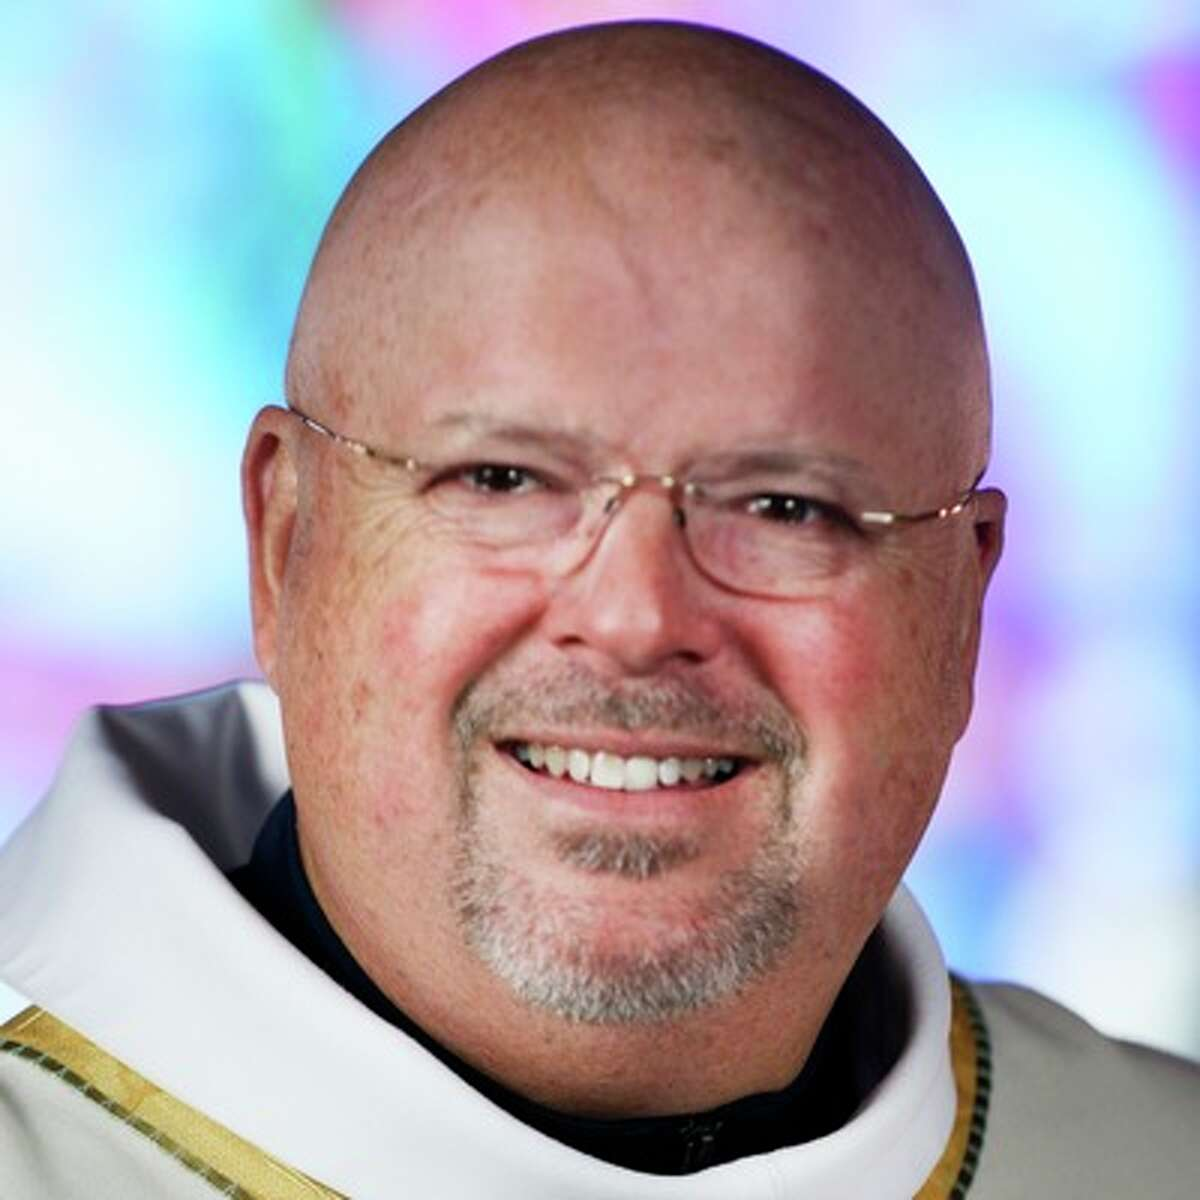 Pilot Mike Mims was a deacon at St. Anthony of Padua Catholic Church in The Woodlands.